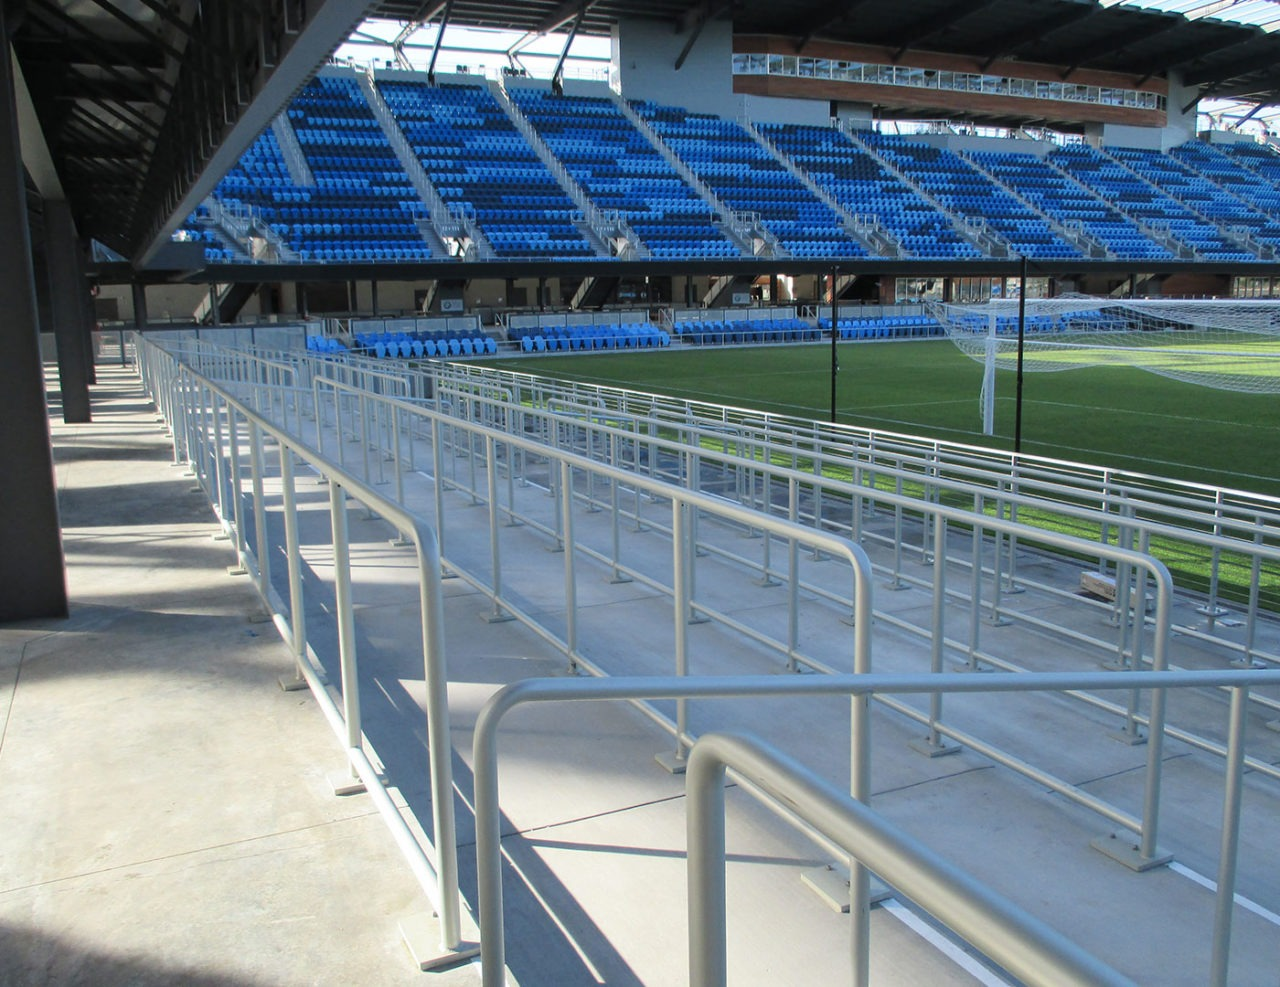 Top mounted aluminum tube railing at Avaya Stadium